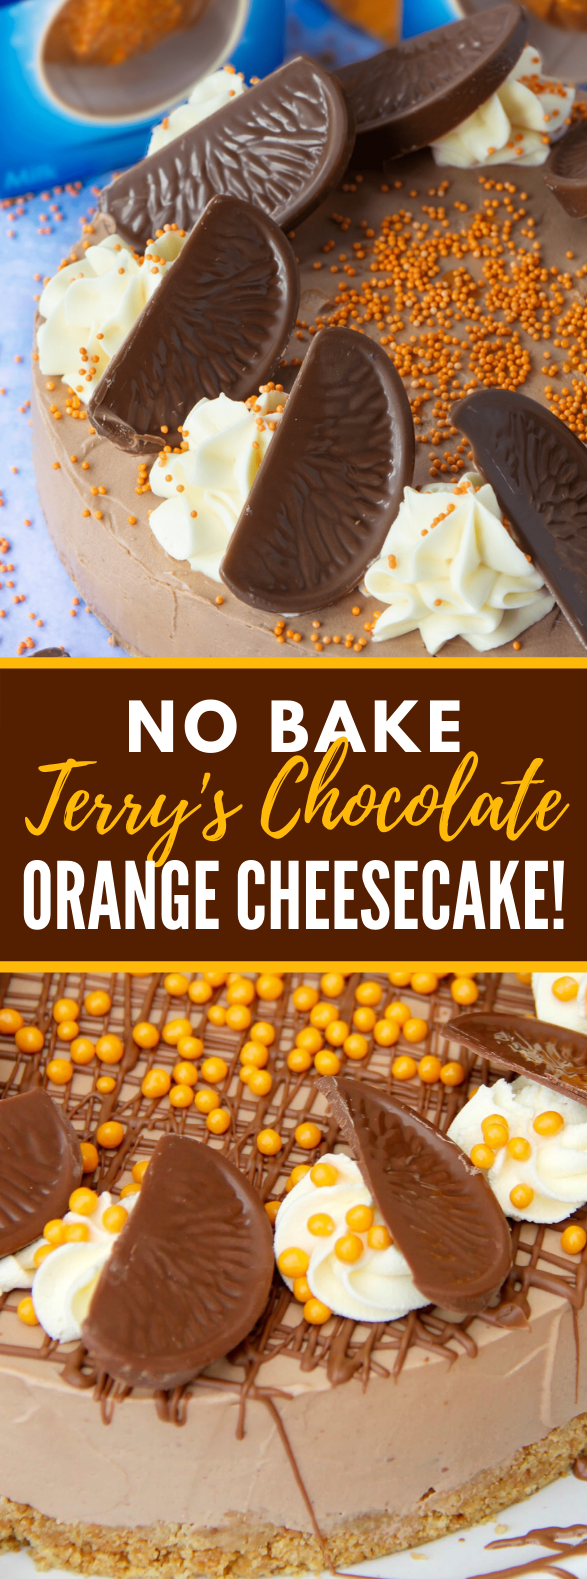 NO-BAKE TERRY'S CHOCOLATE ORANGE CHEESECAKE! #desserts #cake